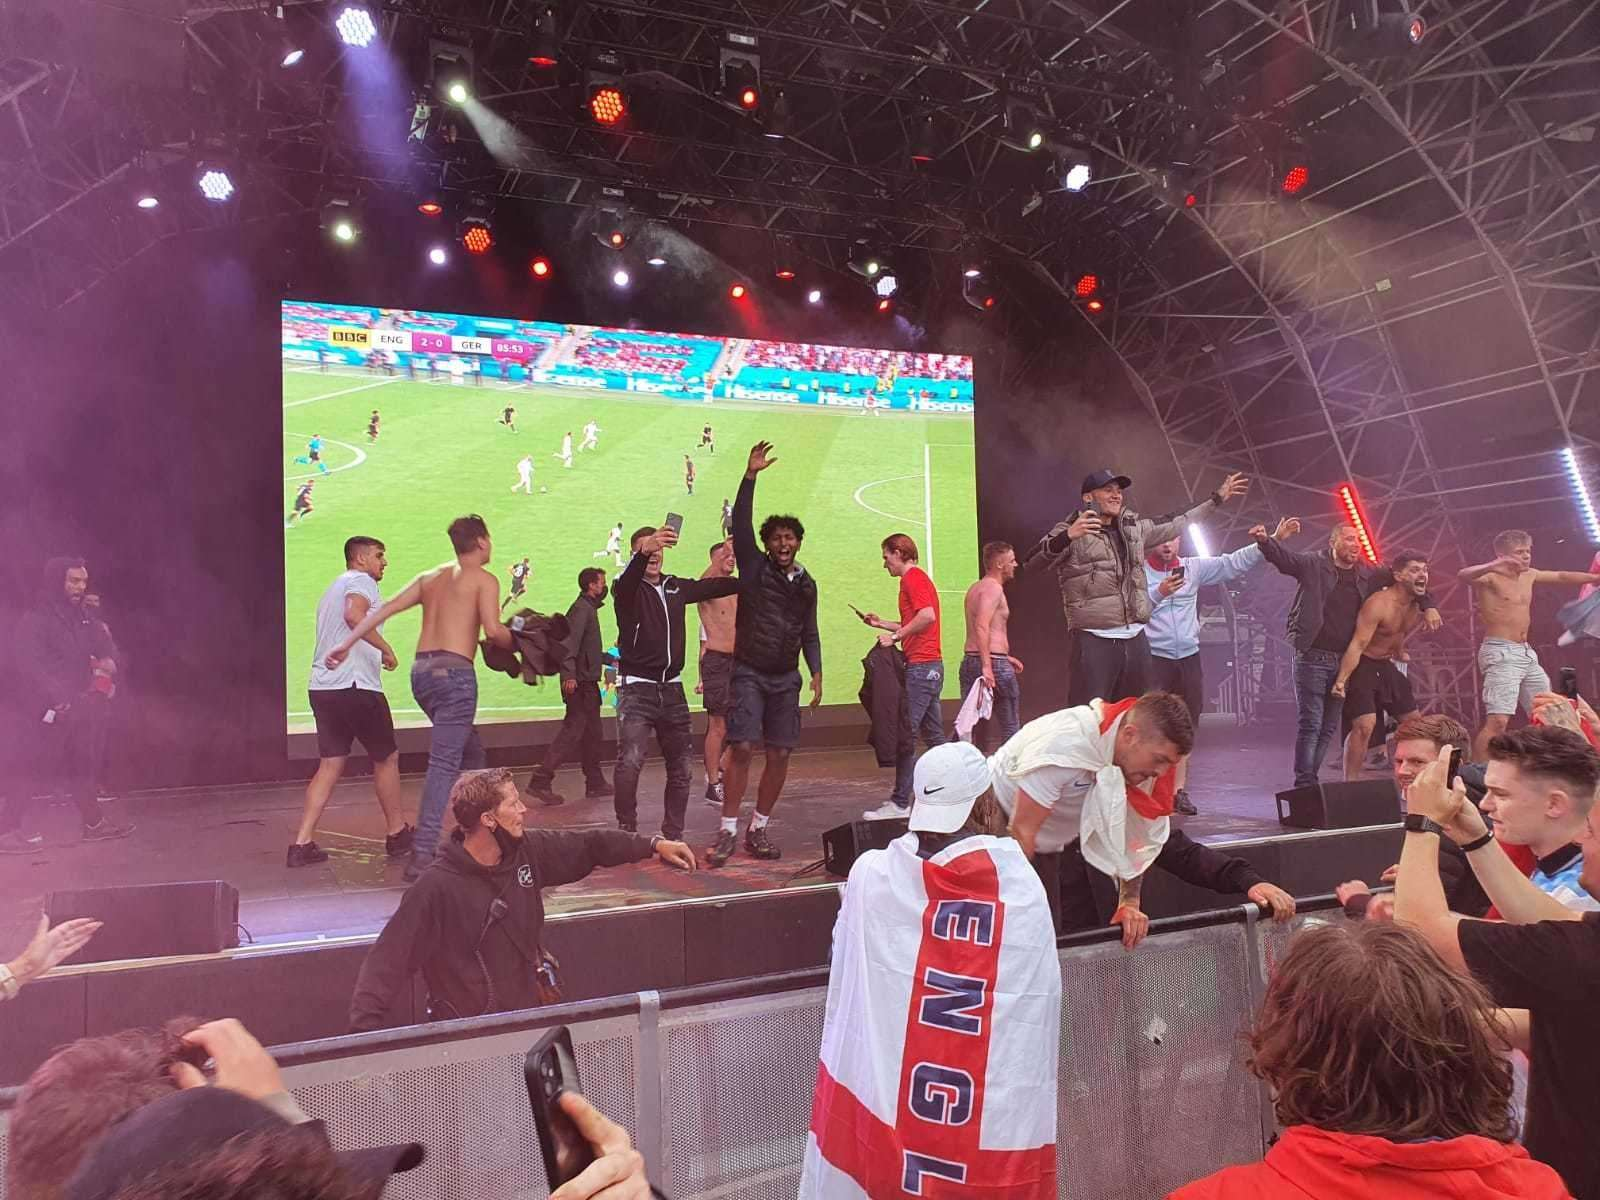 Fans on stage at Dreamland after the England v Germany game